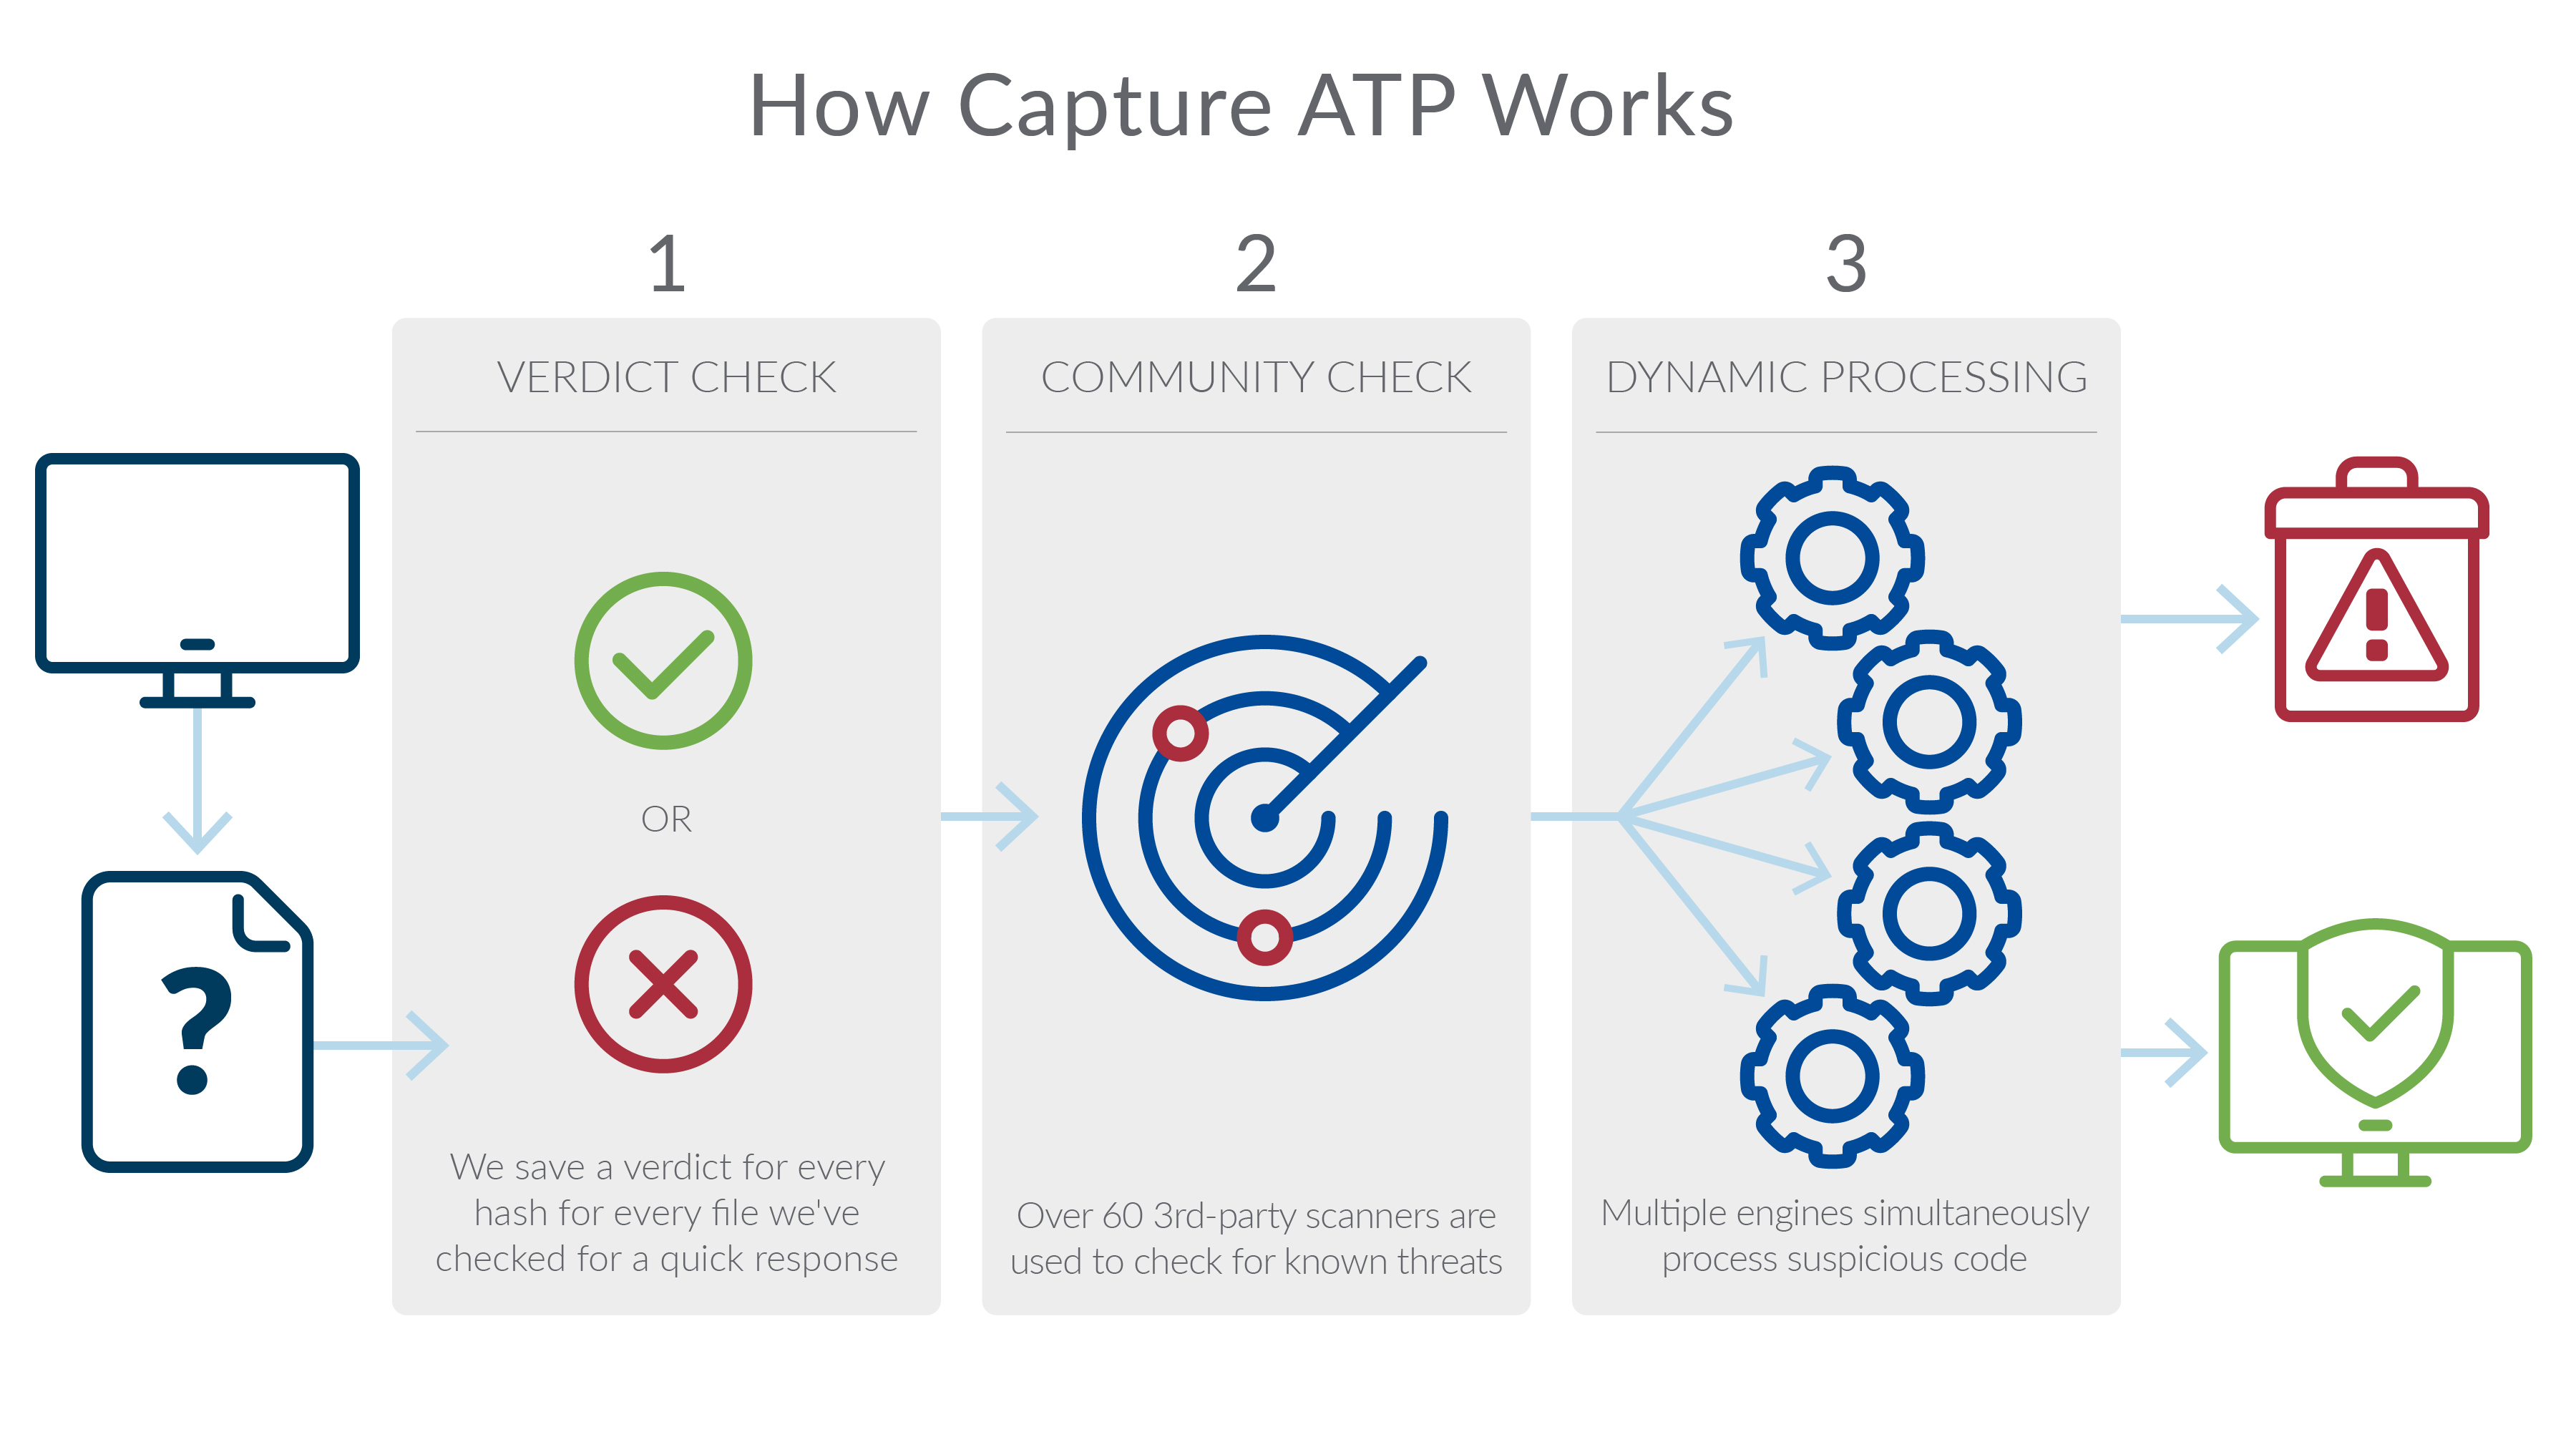 SonicWall Capture ATP